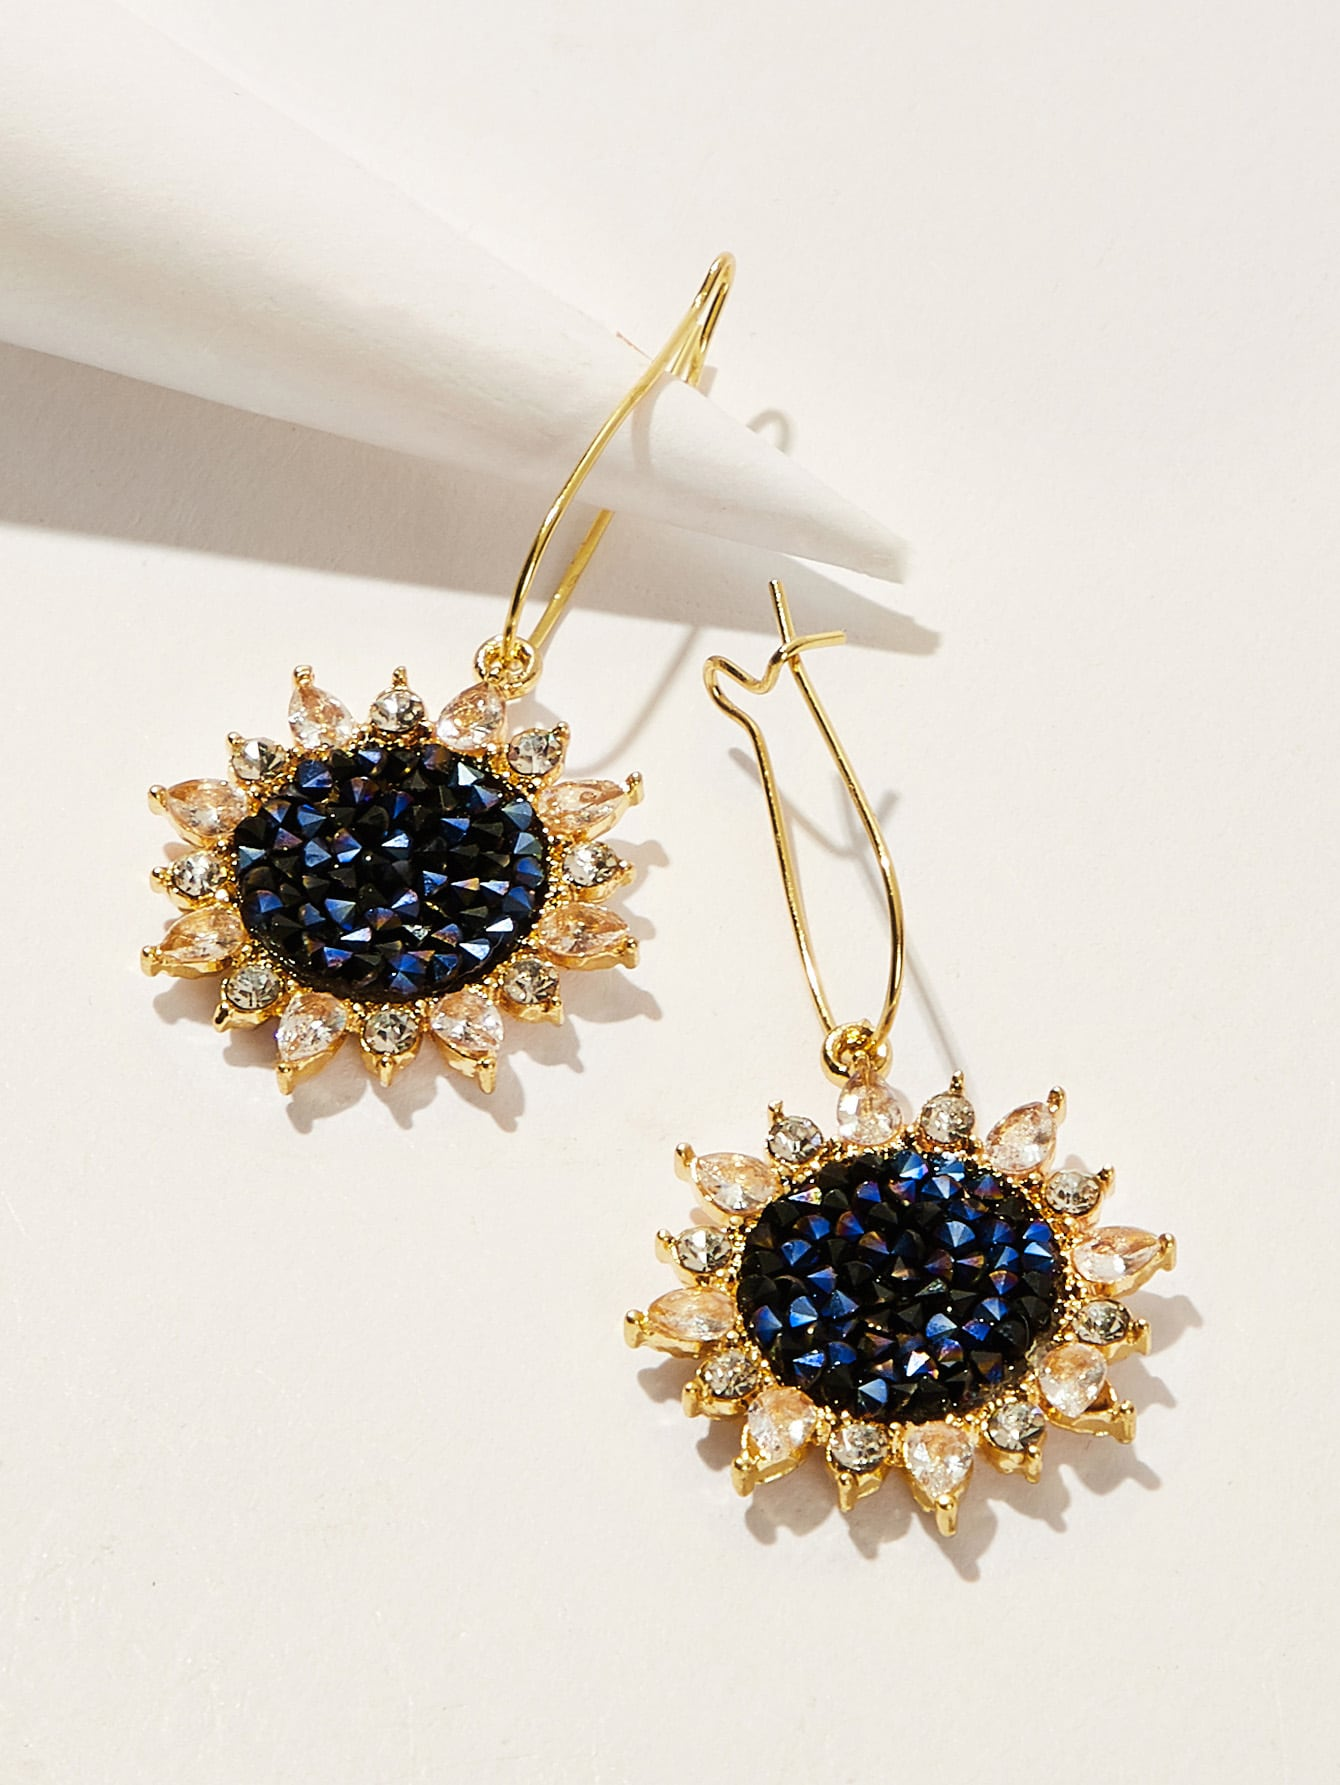 Rhinestone Sunflower Design Drop Earrings 1pair